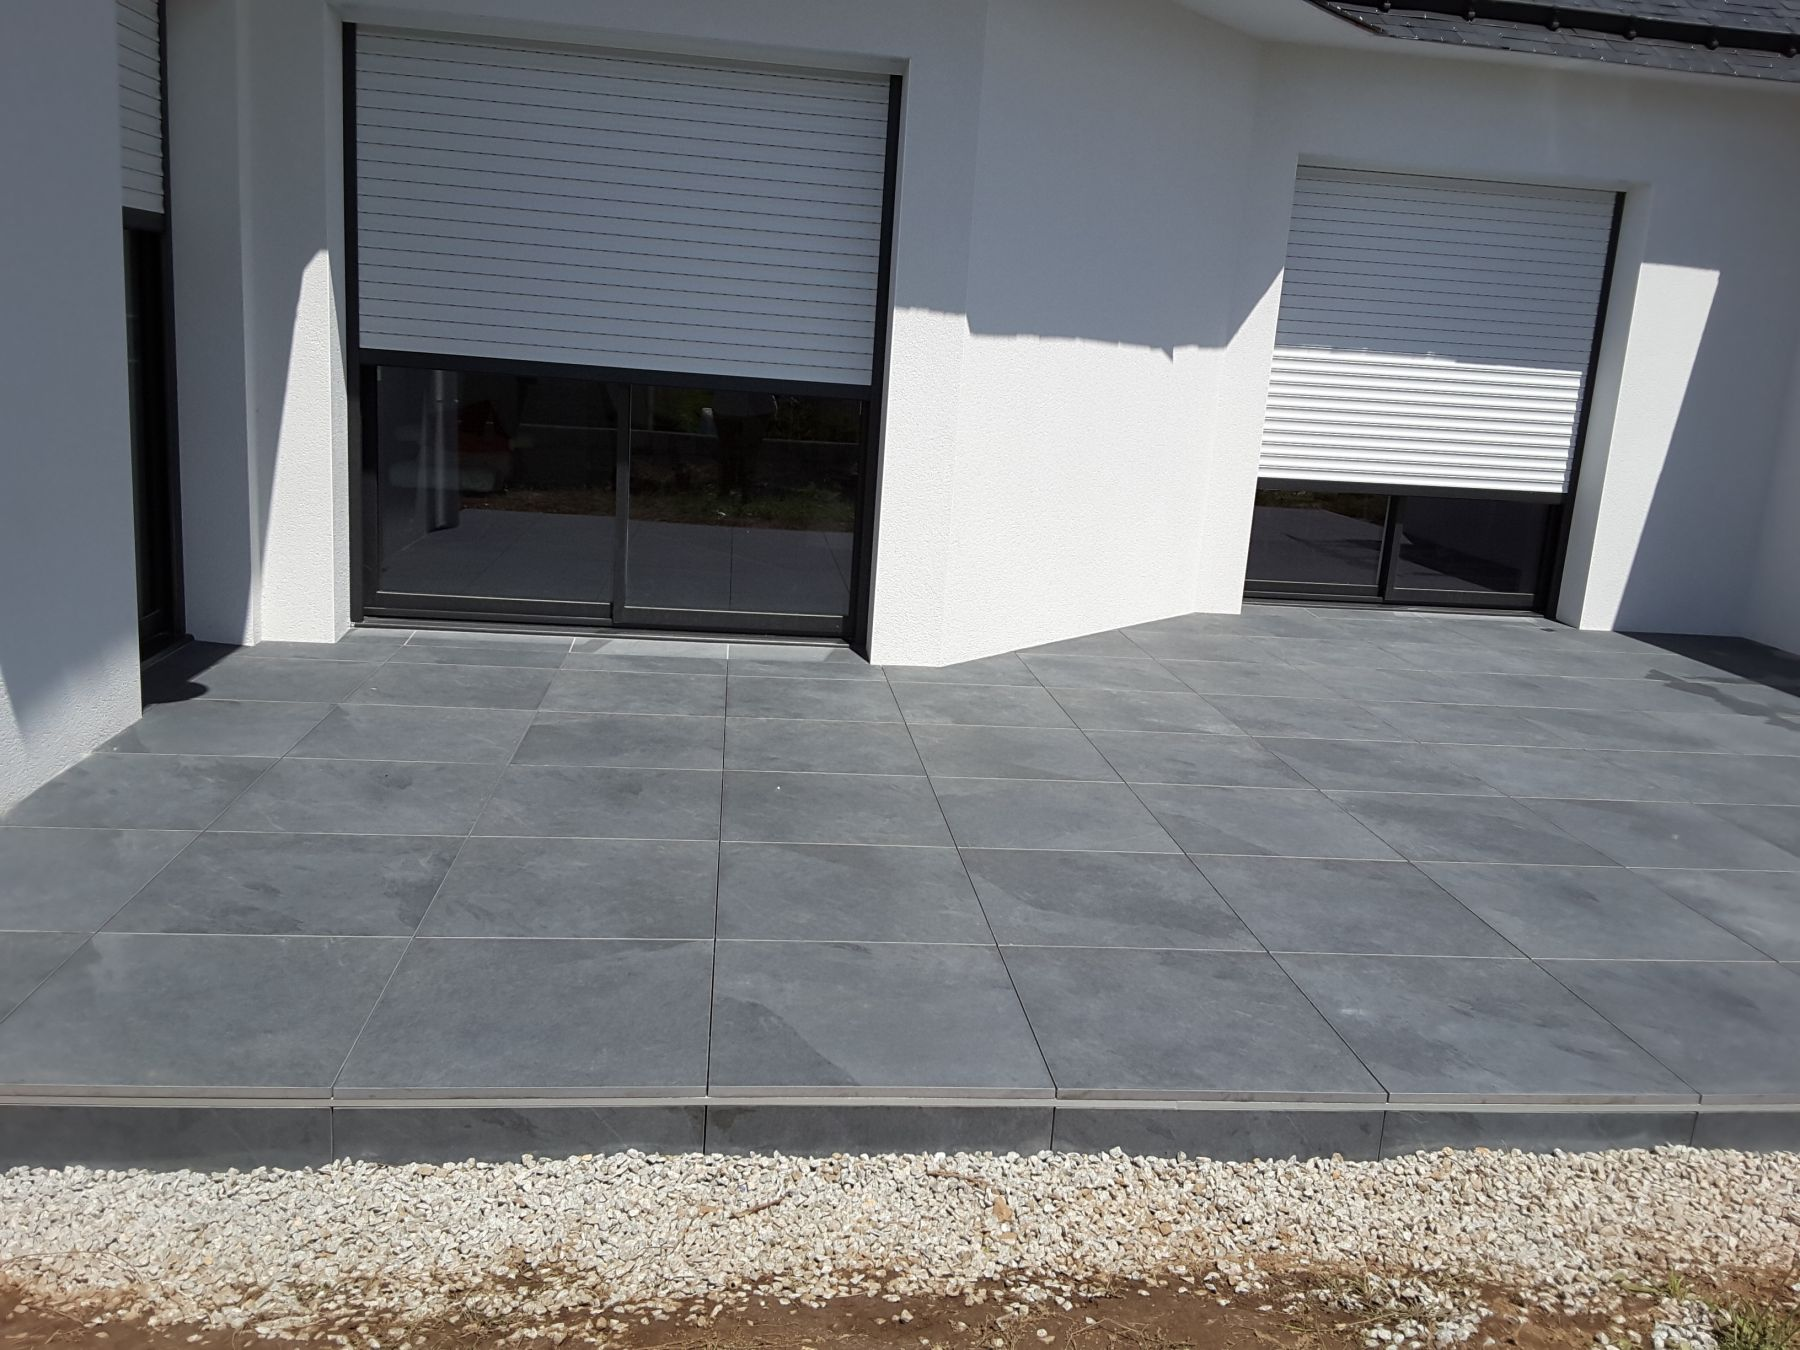 Carrelage design carrelage exterieur sur plot moderne for Pose carrelage exterieur sur plots